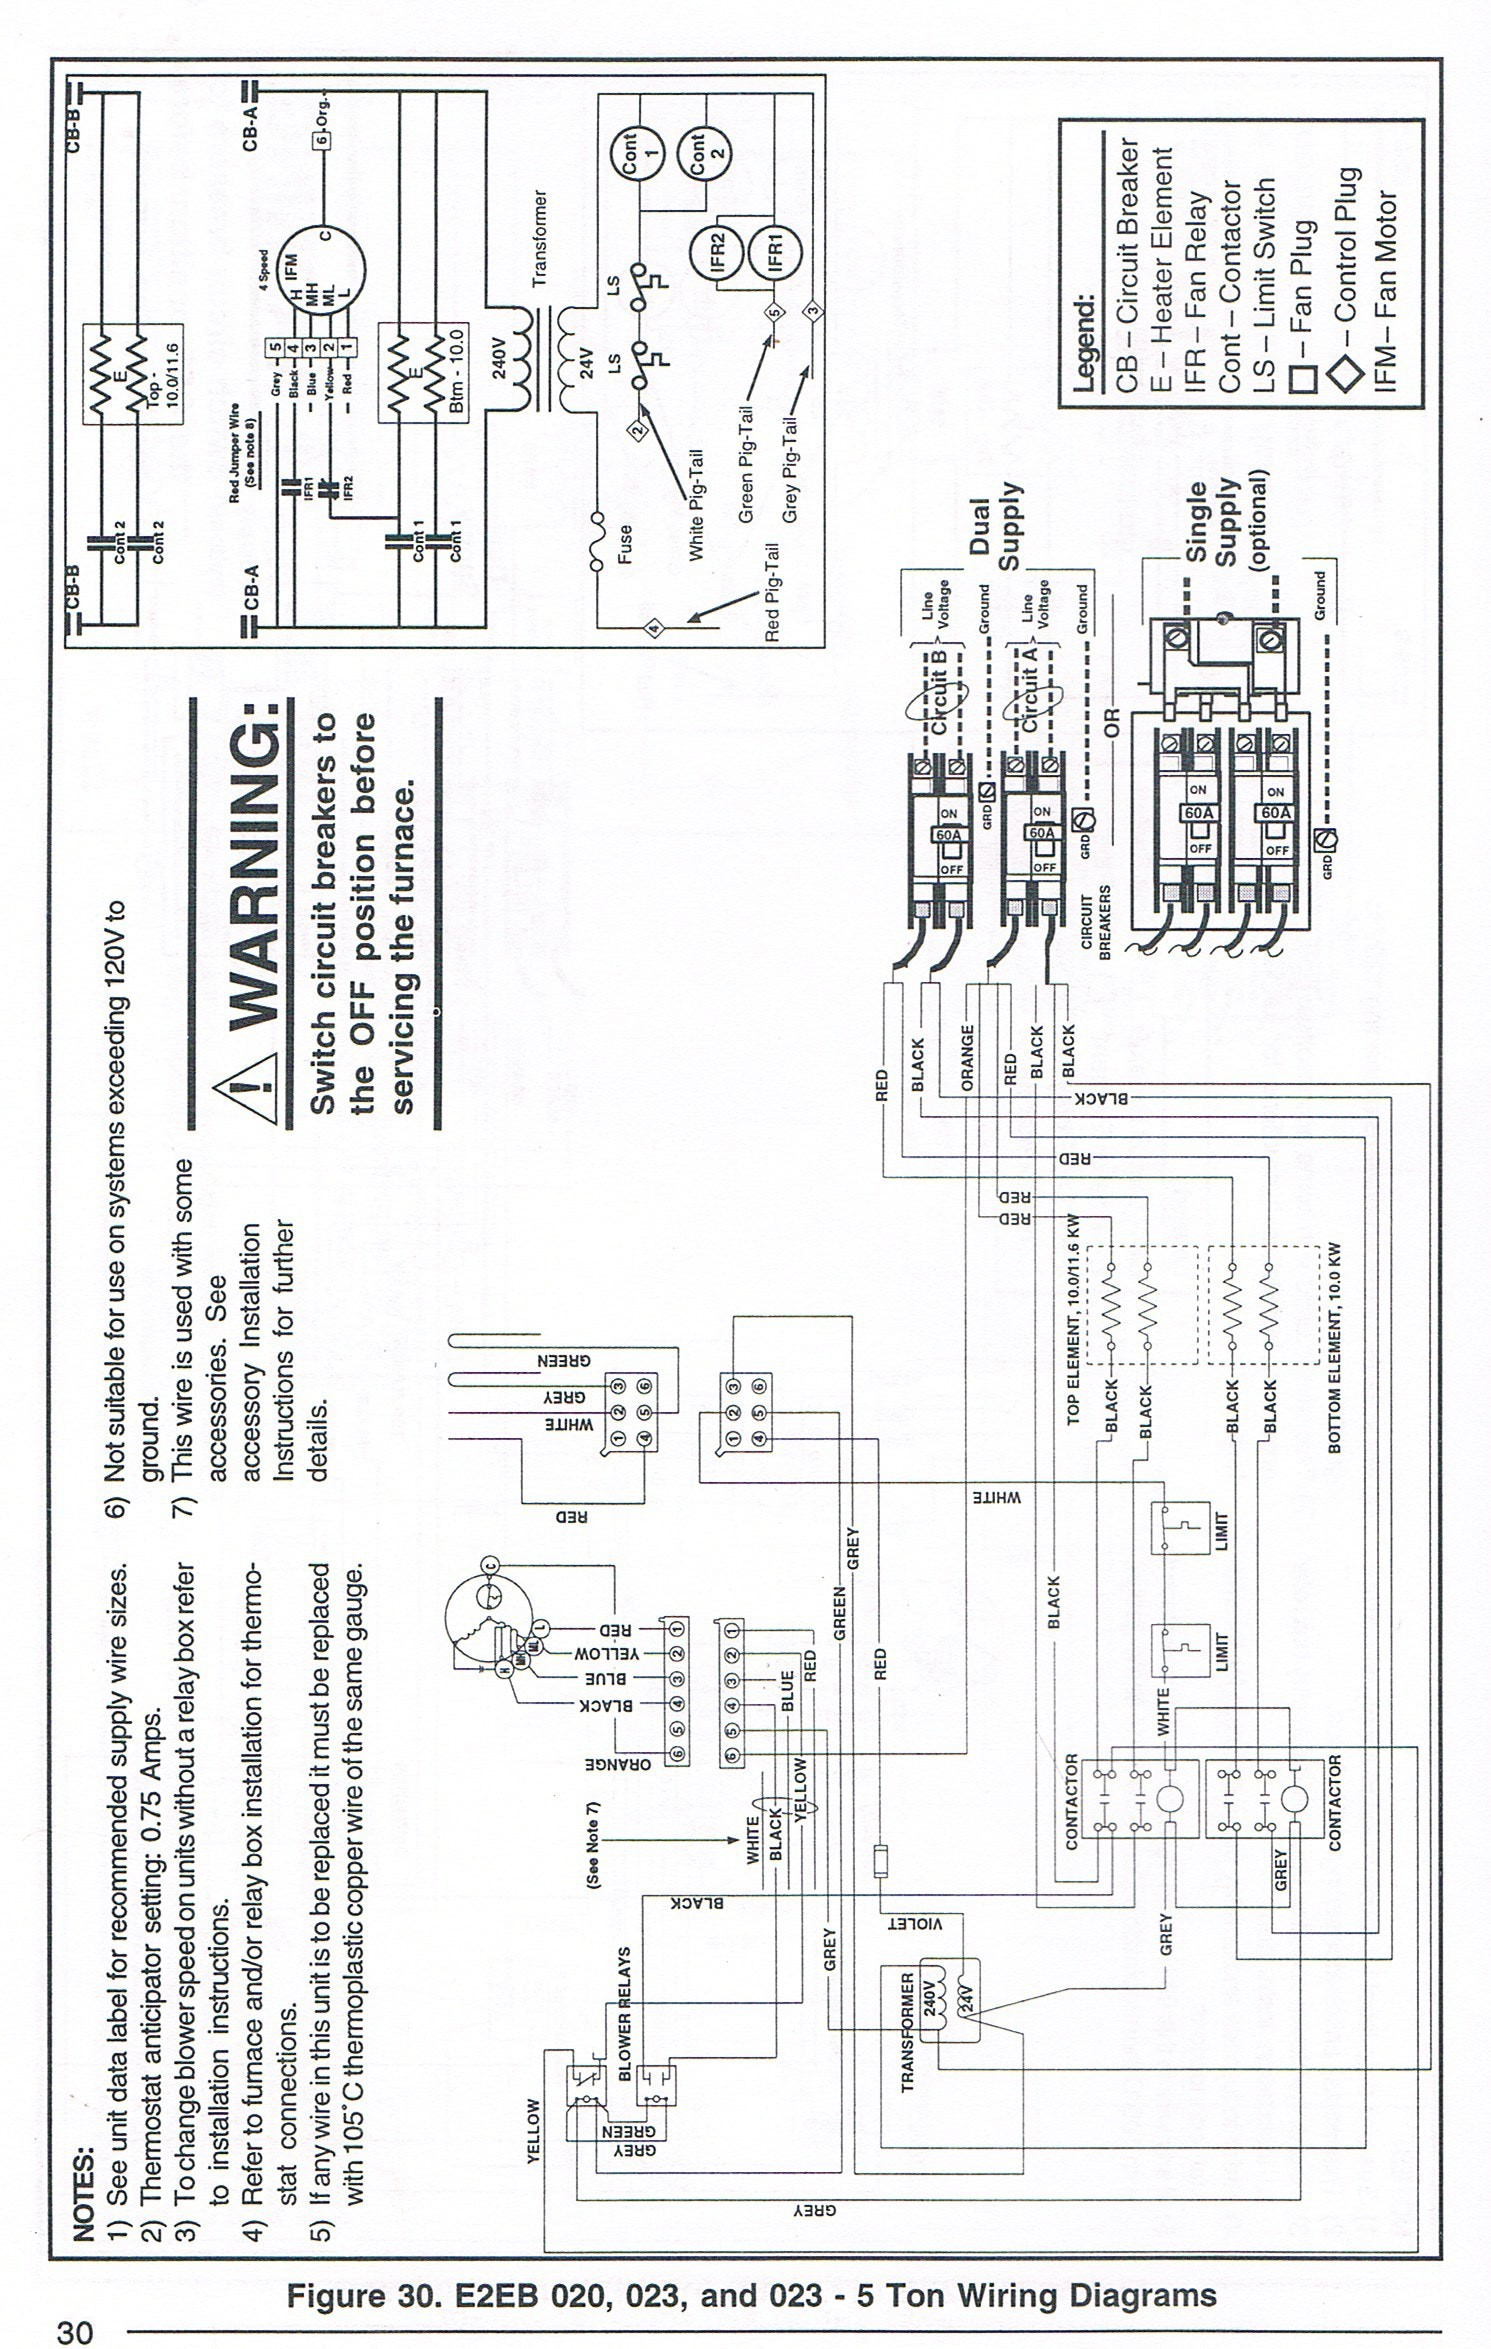 120v Electrical Switch Furnace Wiring Diagrams. House ... on